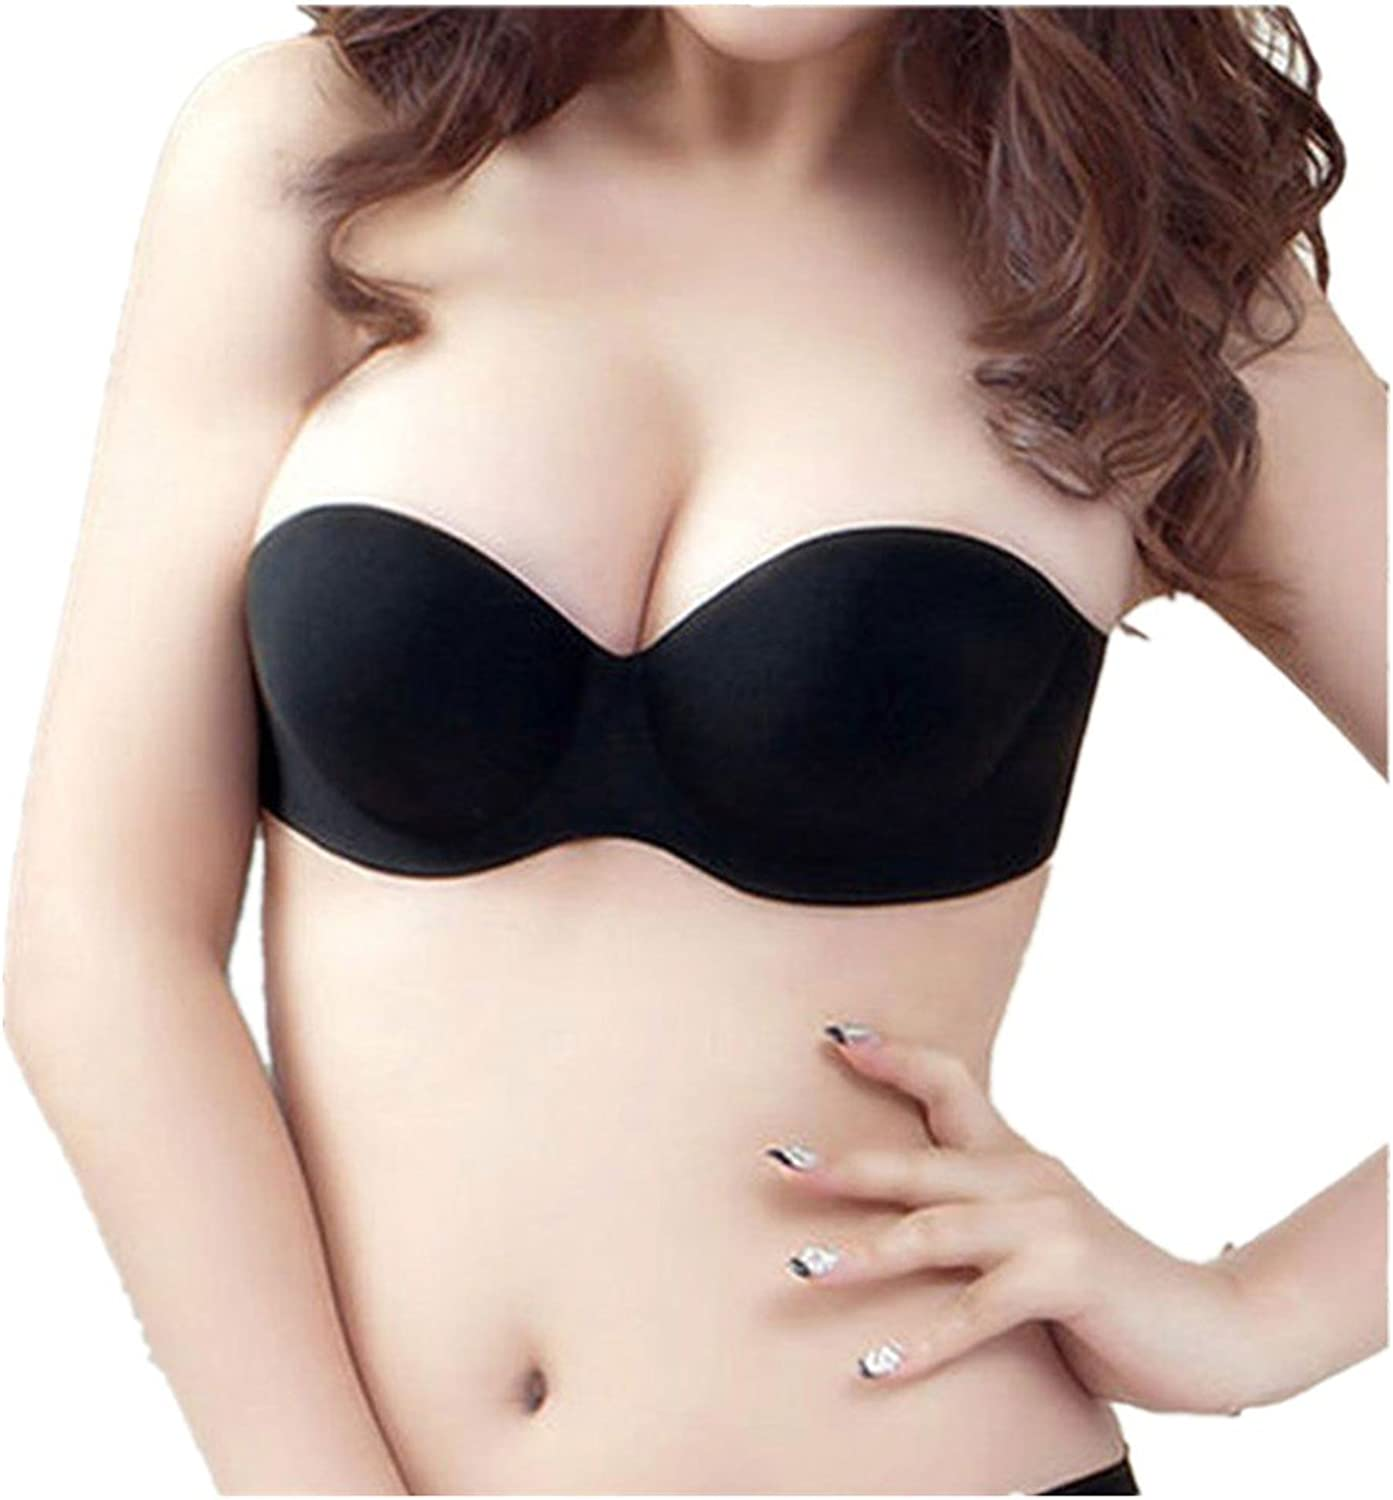 Waterproof Bra  Invisible Strapless PushUp Backless Bra Adhesive Silicone Bra